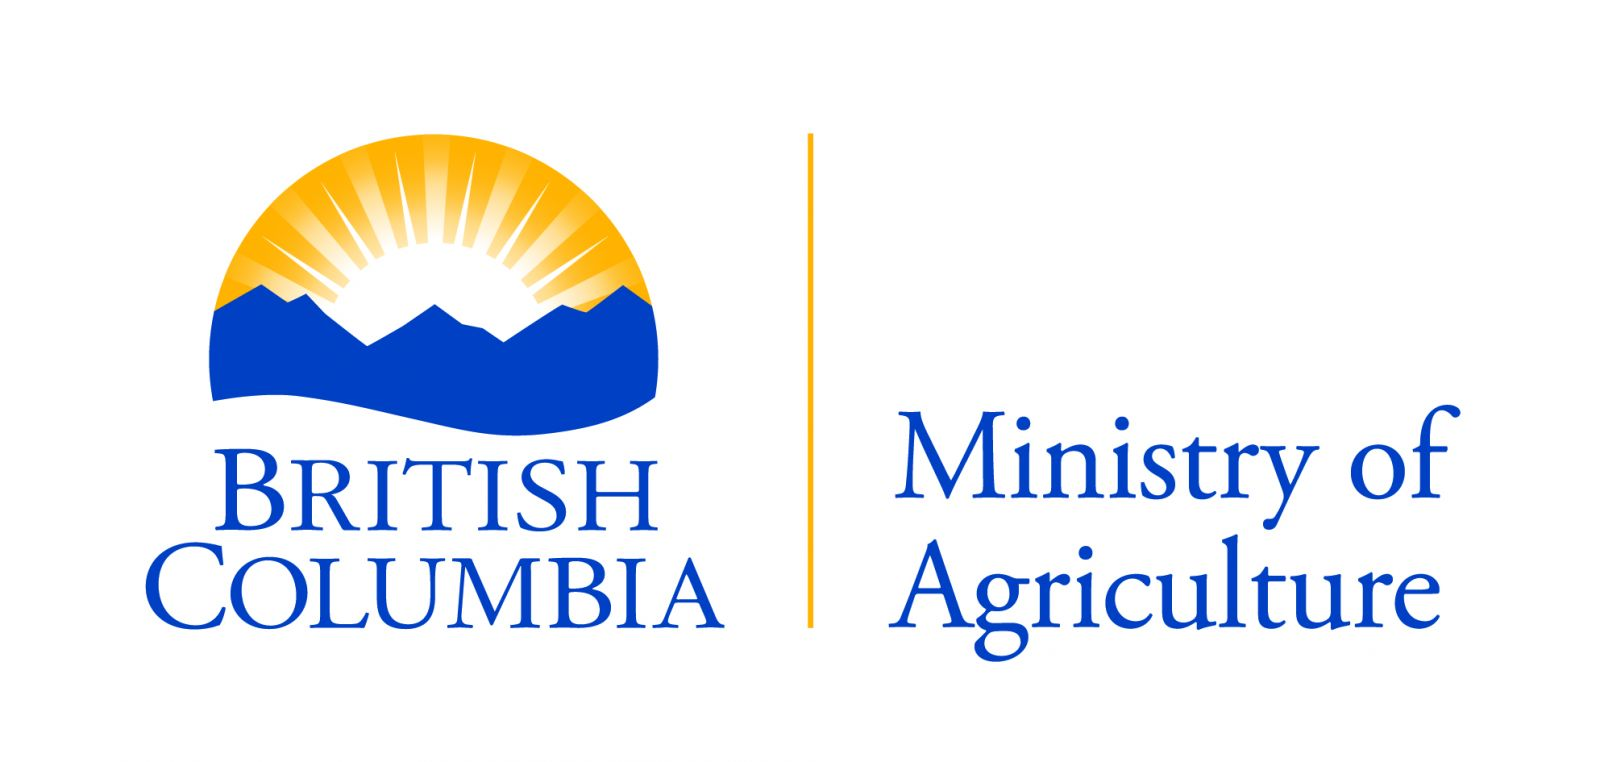 British Columbia Ministry of Agriculture